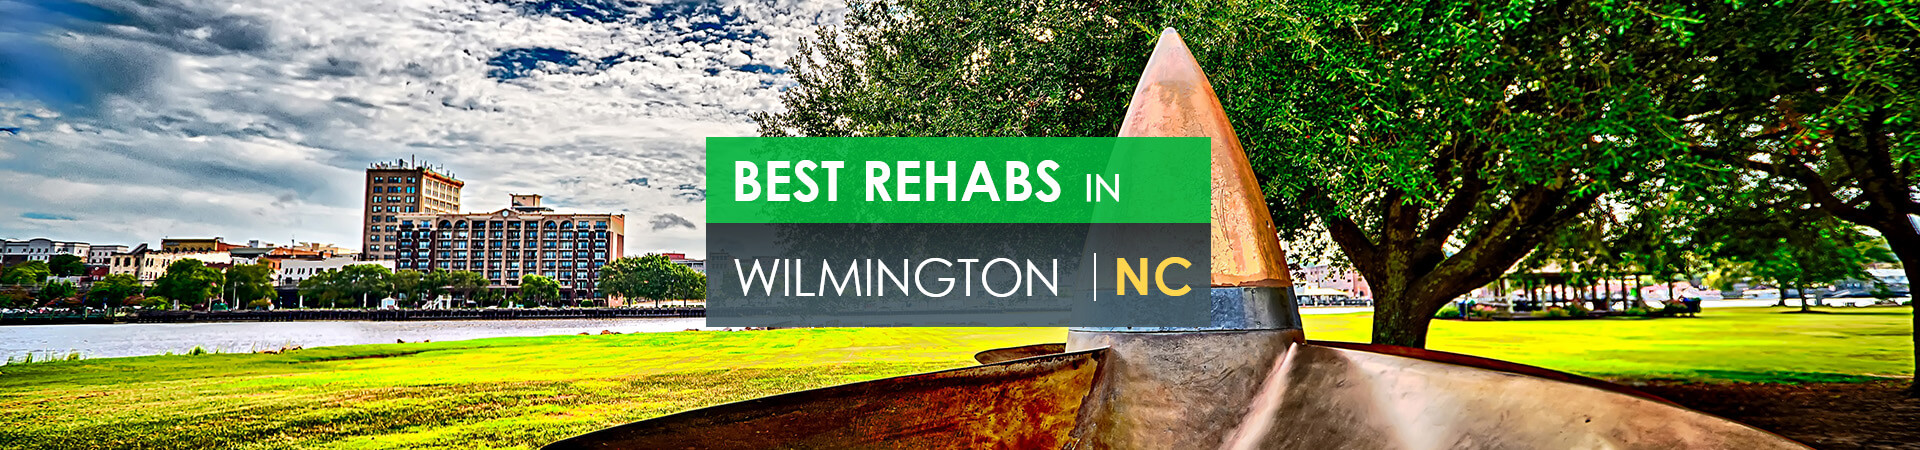 Best rehabs in Wilmington, NC